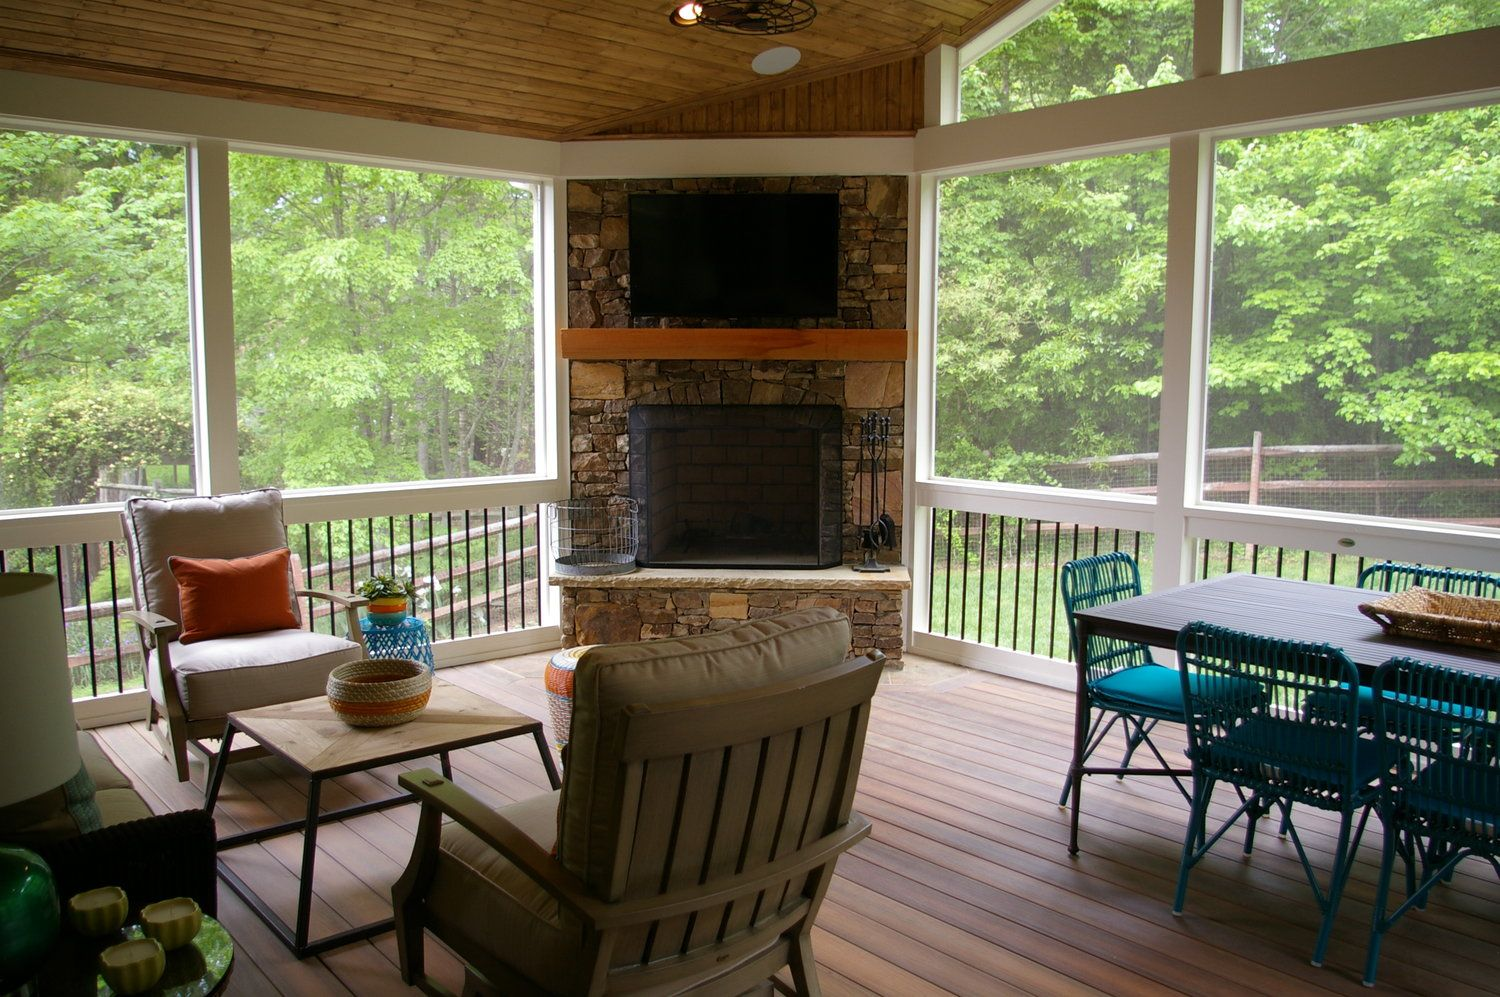 Projects Deckscapes In 2020 Corner Fireplace Patio Deck Designs Deck Fireplace